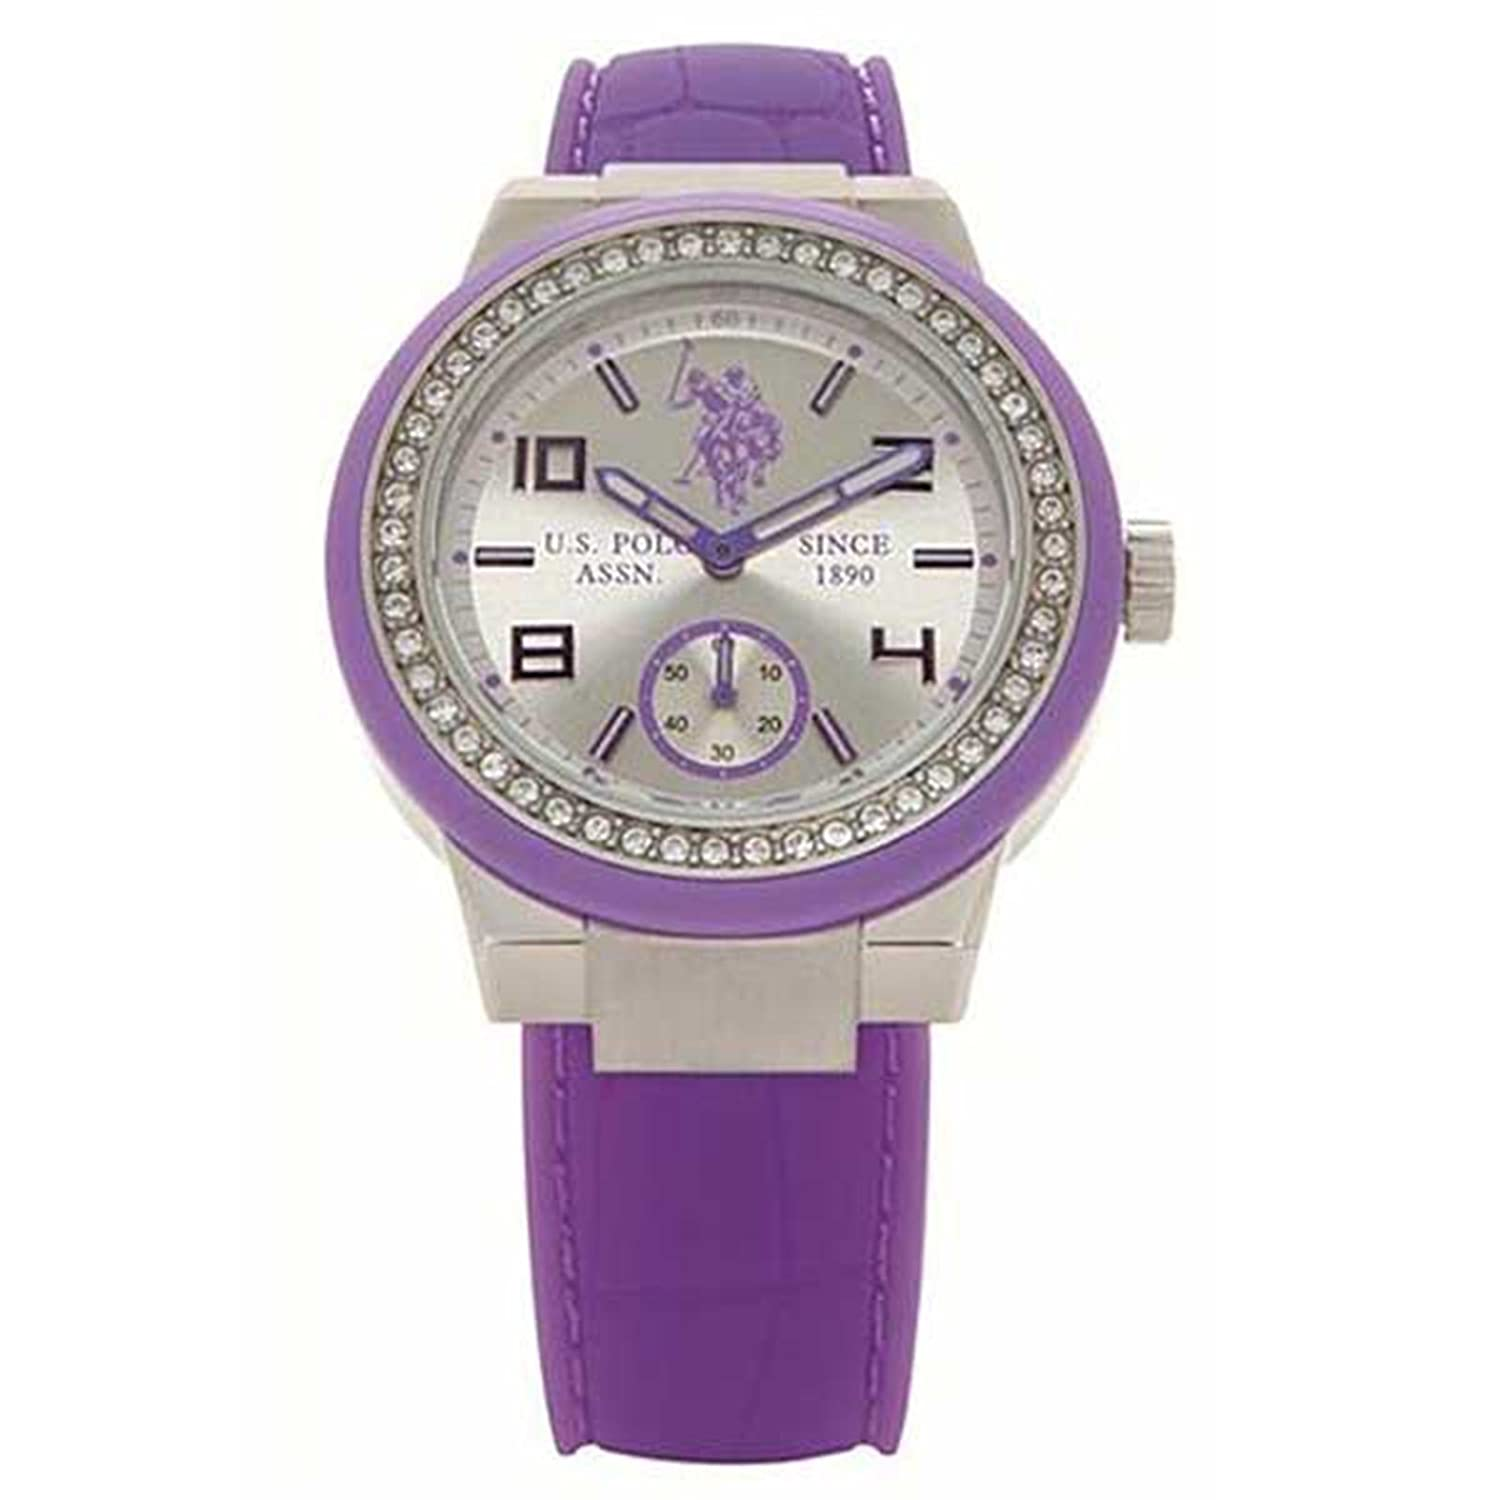 Uhr Damen U.S Polo Assn Savannah usp5048vt